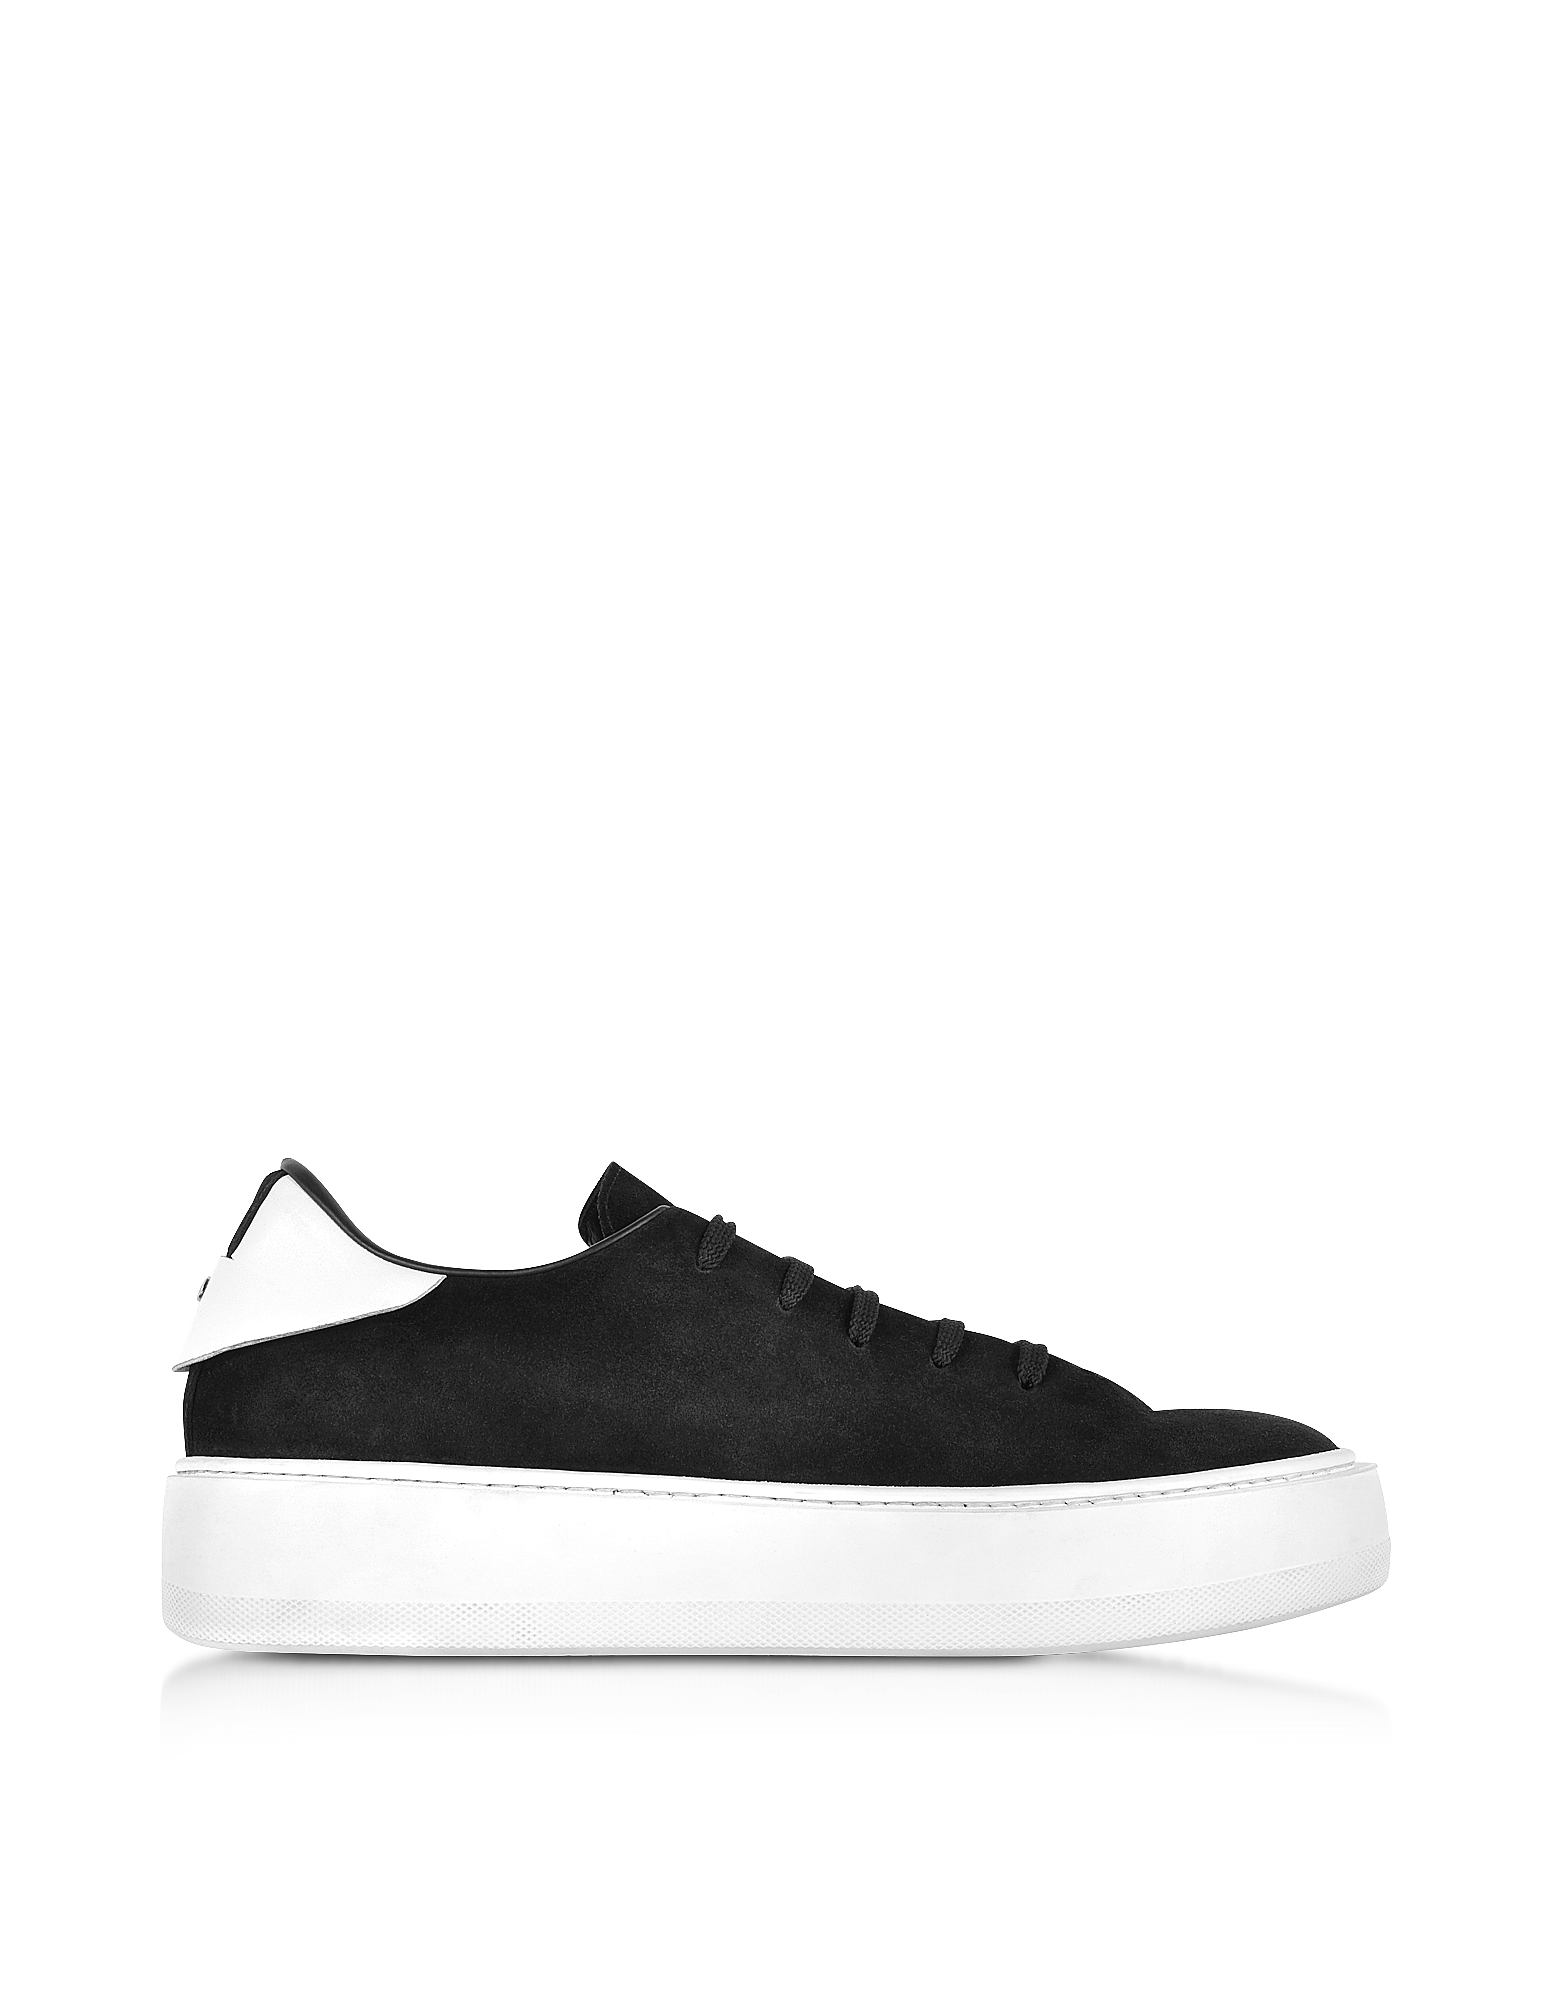 Cesare Paciotti Shoes, Black Suede Low Top Sneakers w/White Rubber Sole